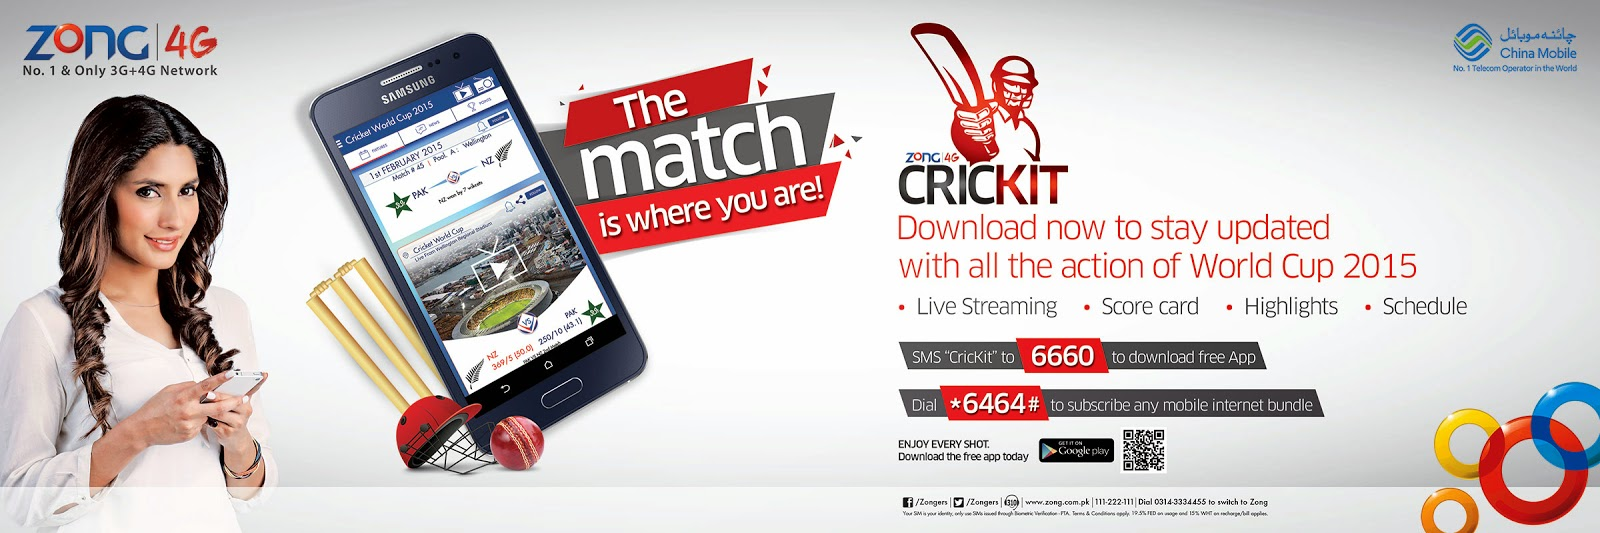 Zong Launches Crickit World Cup App